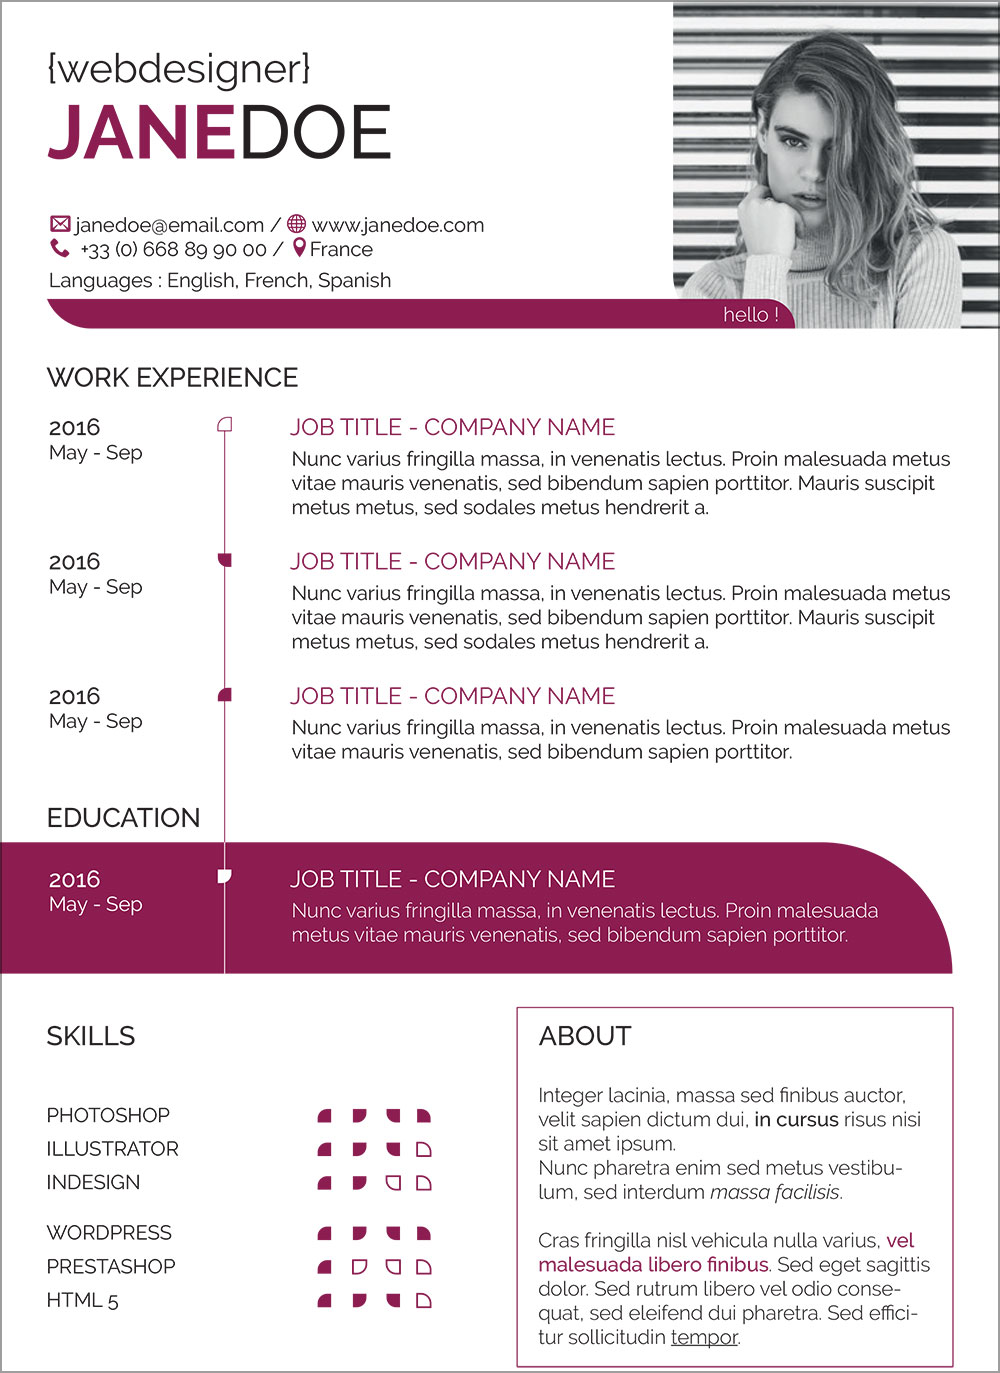 Free-Resume-Ai-Design-Template-for-Web-Seekers-3